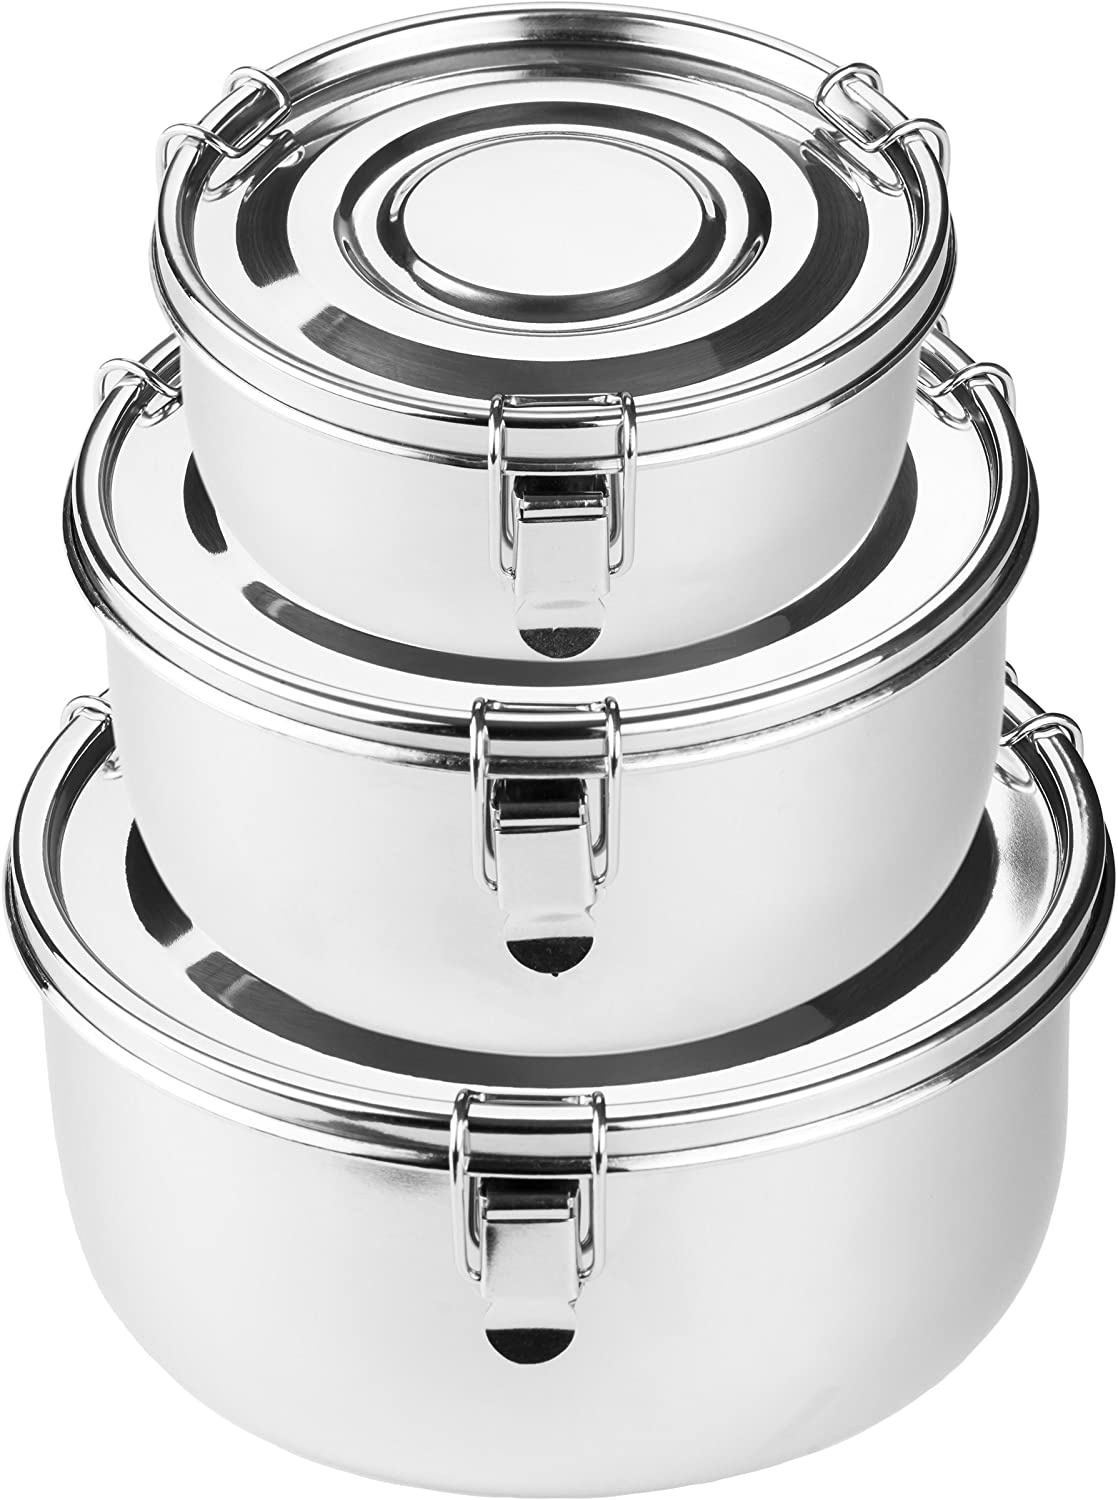 Premium Stainless Steel Food Storage Containers | 316 Grade | The Original Leak-Proof, Airtight, Smell-Proof - Perfect For Camping Trips, Lunches, Leftovers, Soups, Salads & More (Set of 3)